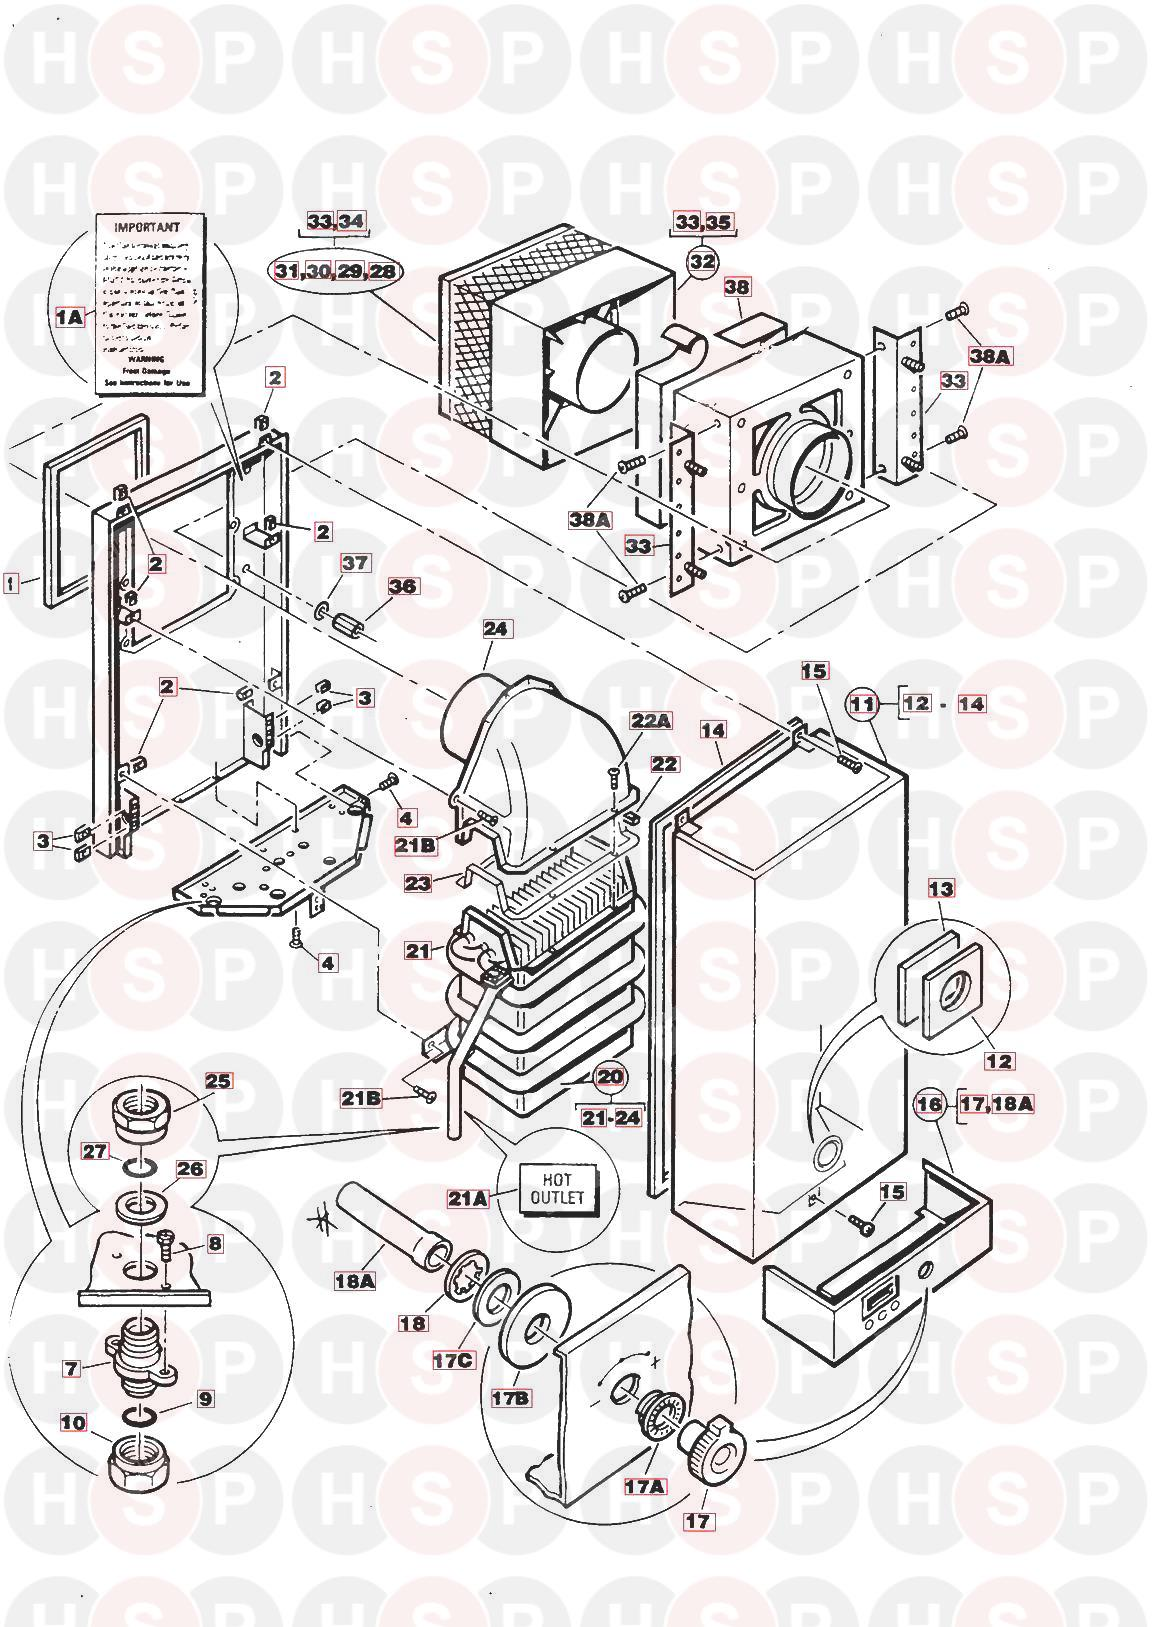 Main MEDWAY SUPER Appliance Diagram (HEAT EXCHANGER OUTER